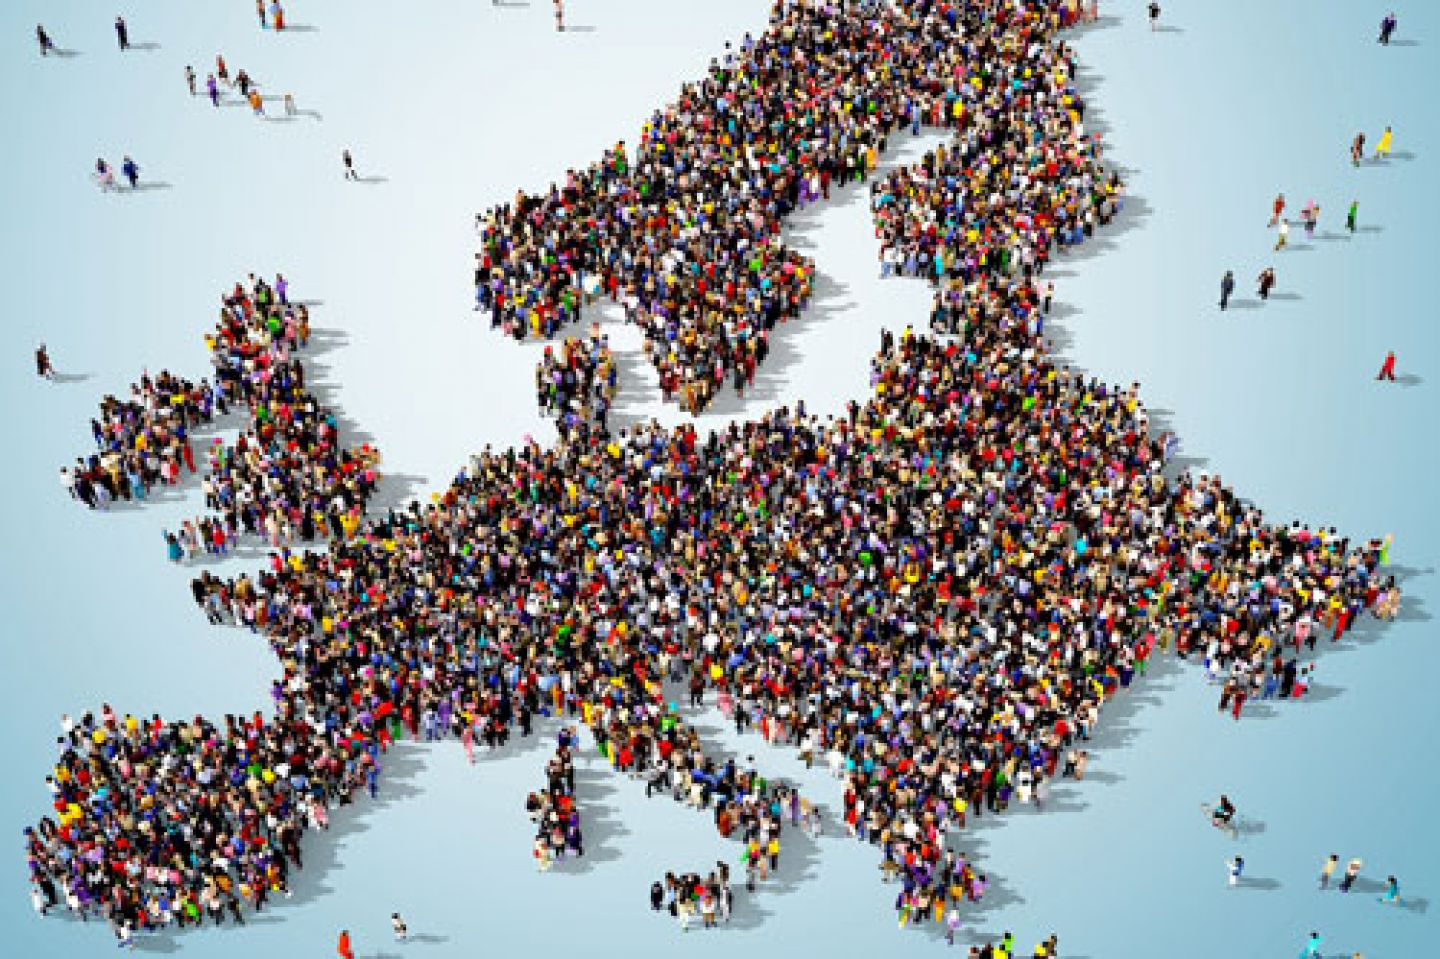 Map of Europe made up of CGI people